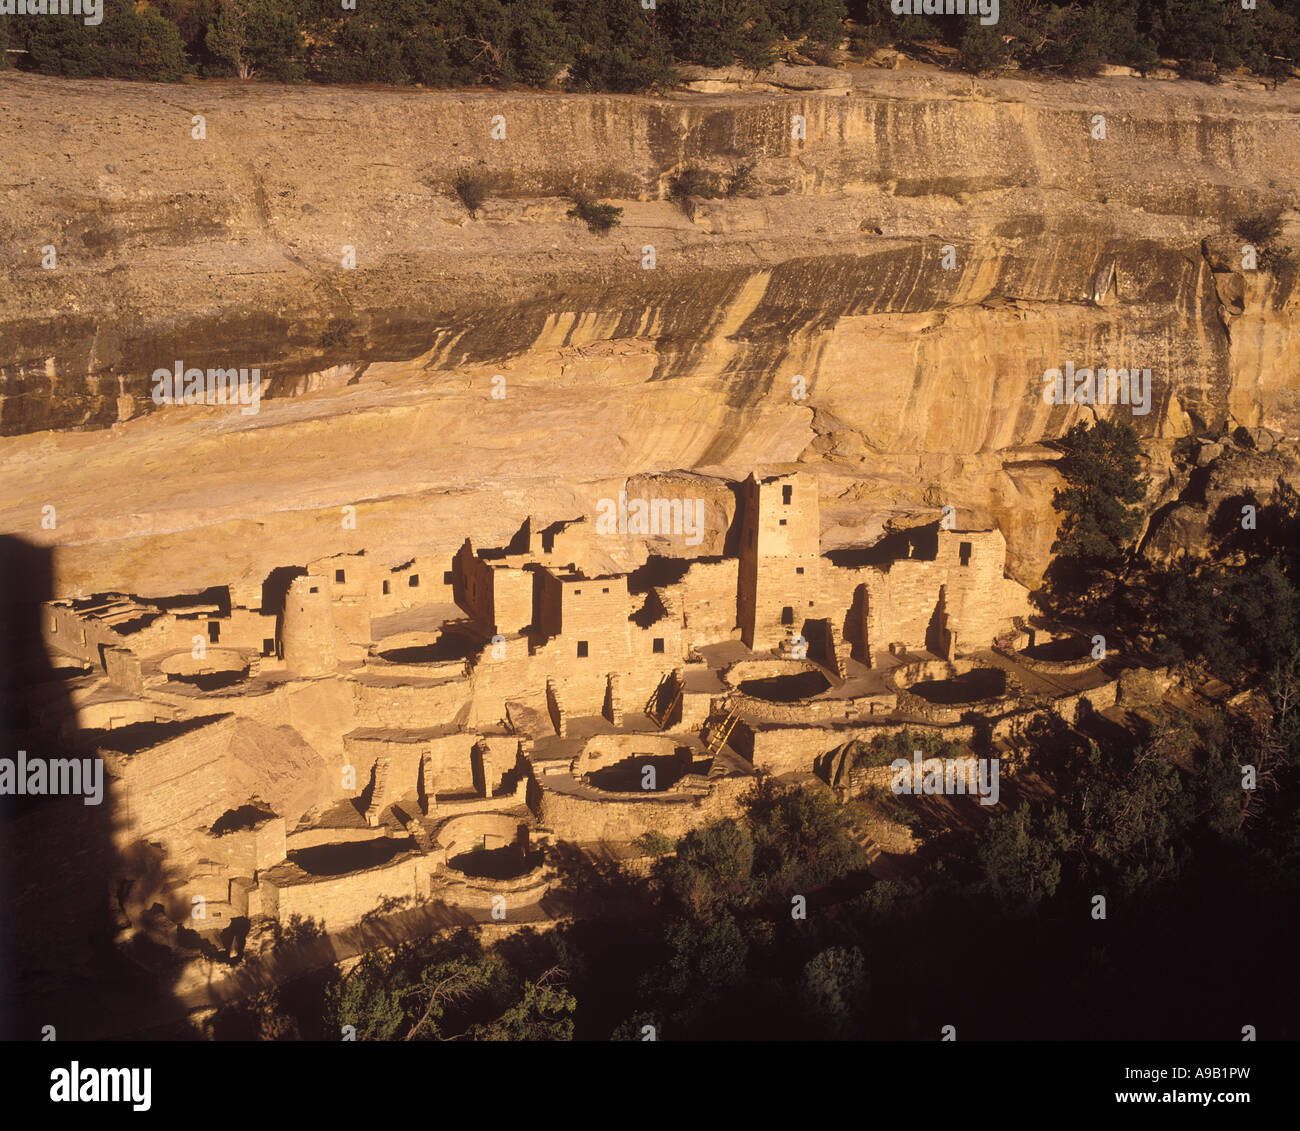 ANASAZI CLIFF PALACE RUINS MESA VERDE NATIONAL PARK CORTEZ COLORADO USA - Stock Image